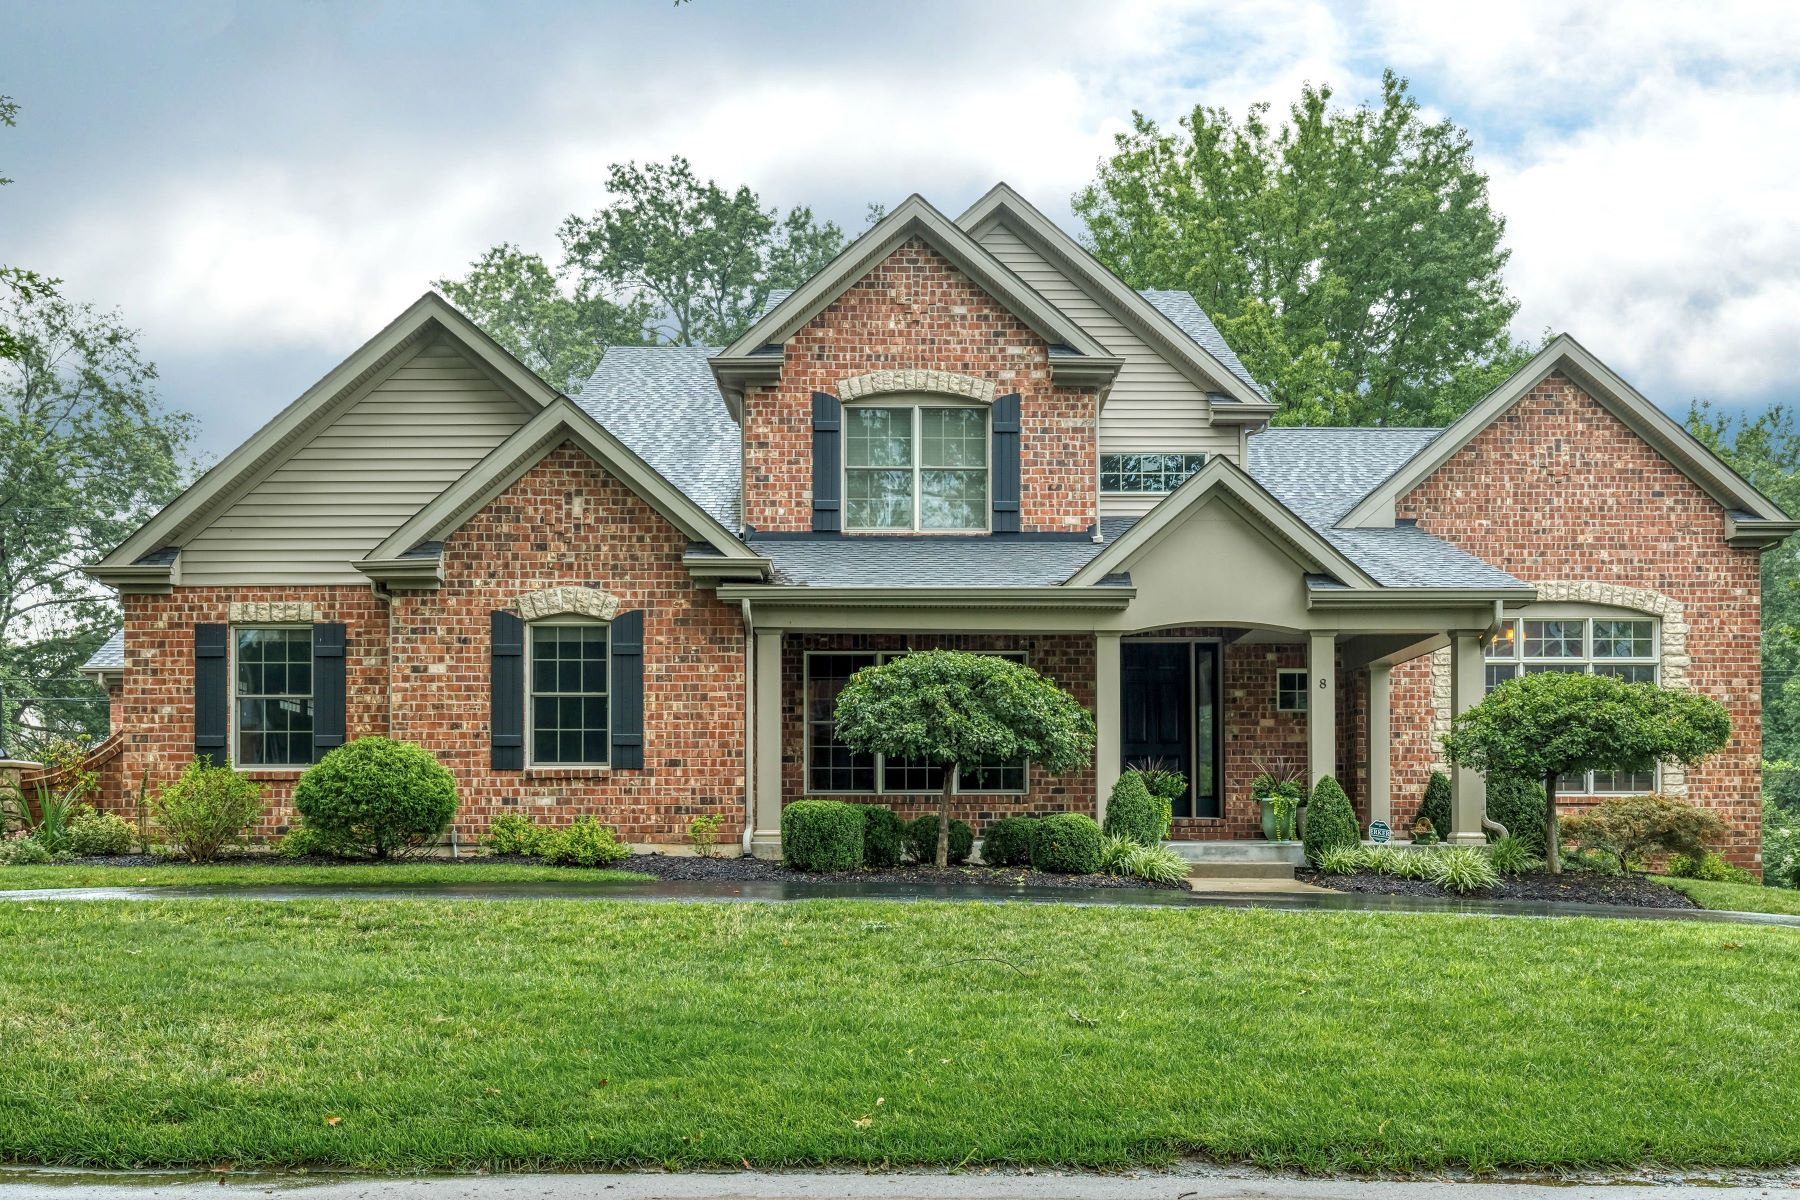 Single Family Homes for Sale at Classic Sophistication 8 Heather Hill Lane Olivette, Missouri 63132 United States